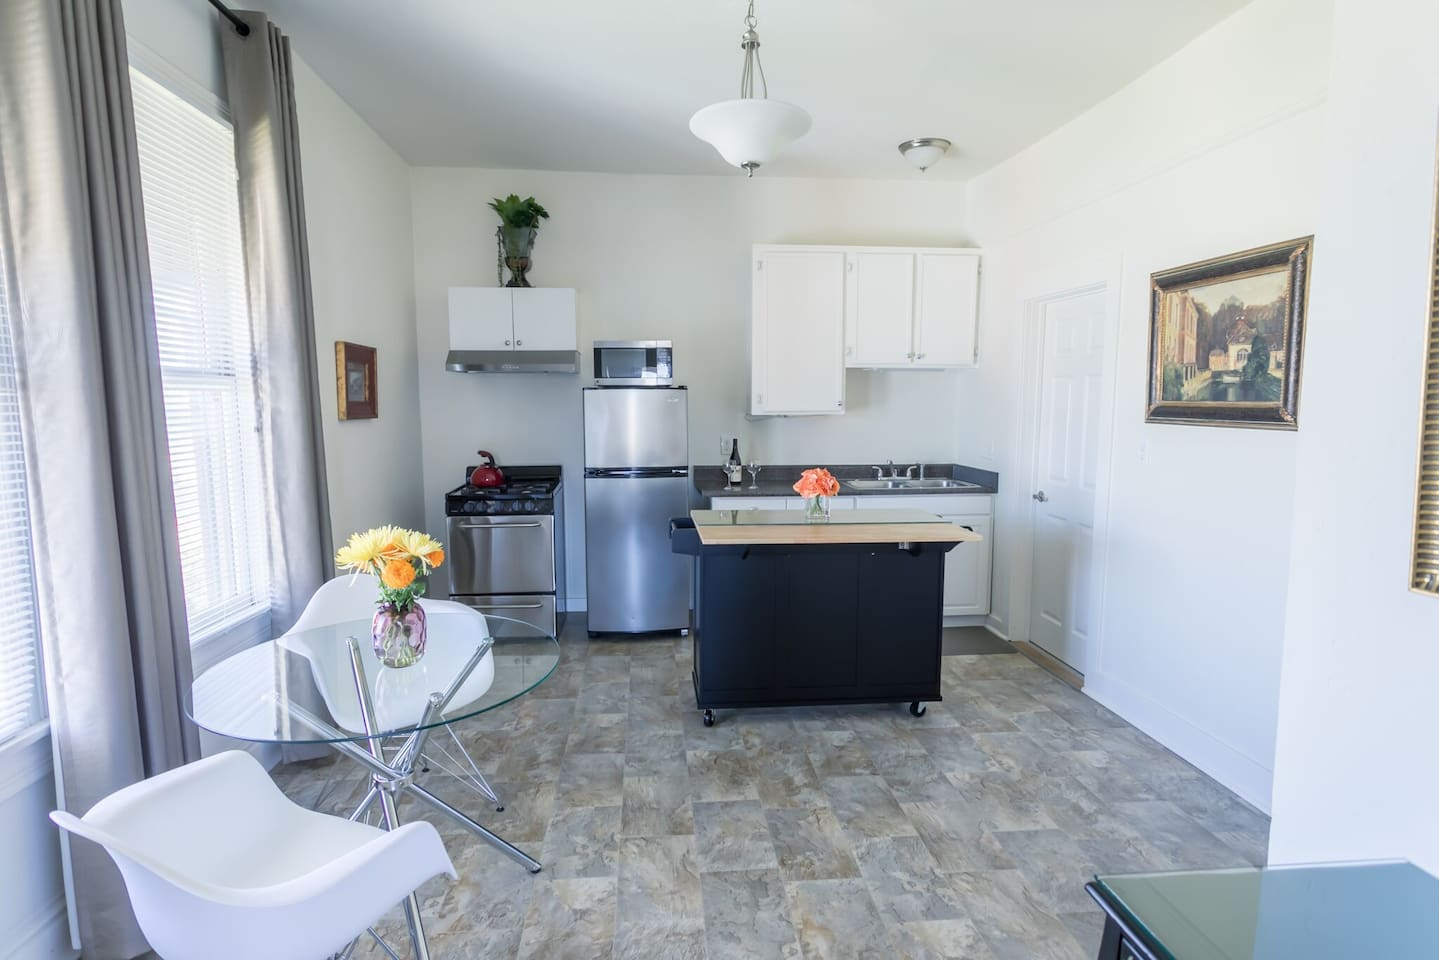 Spacious and Elegant!  Loads of Countertop for you to prepare meals or snacks.